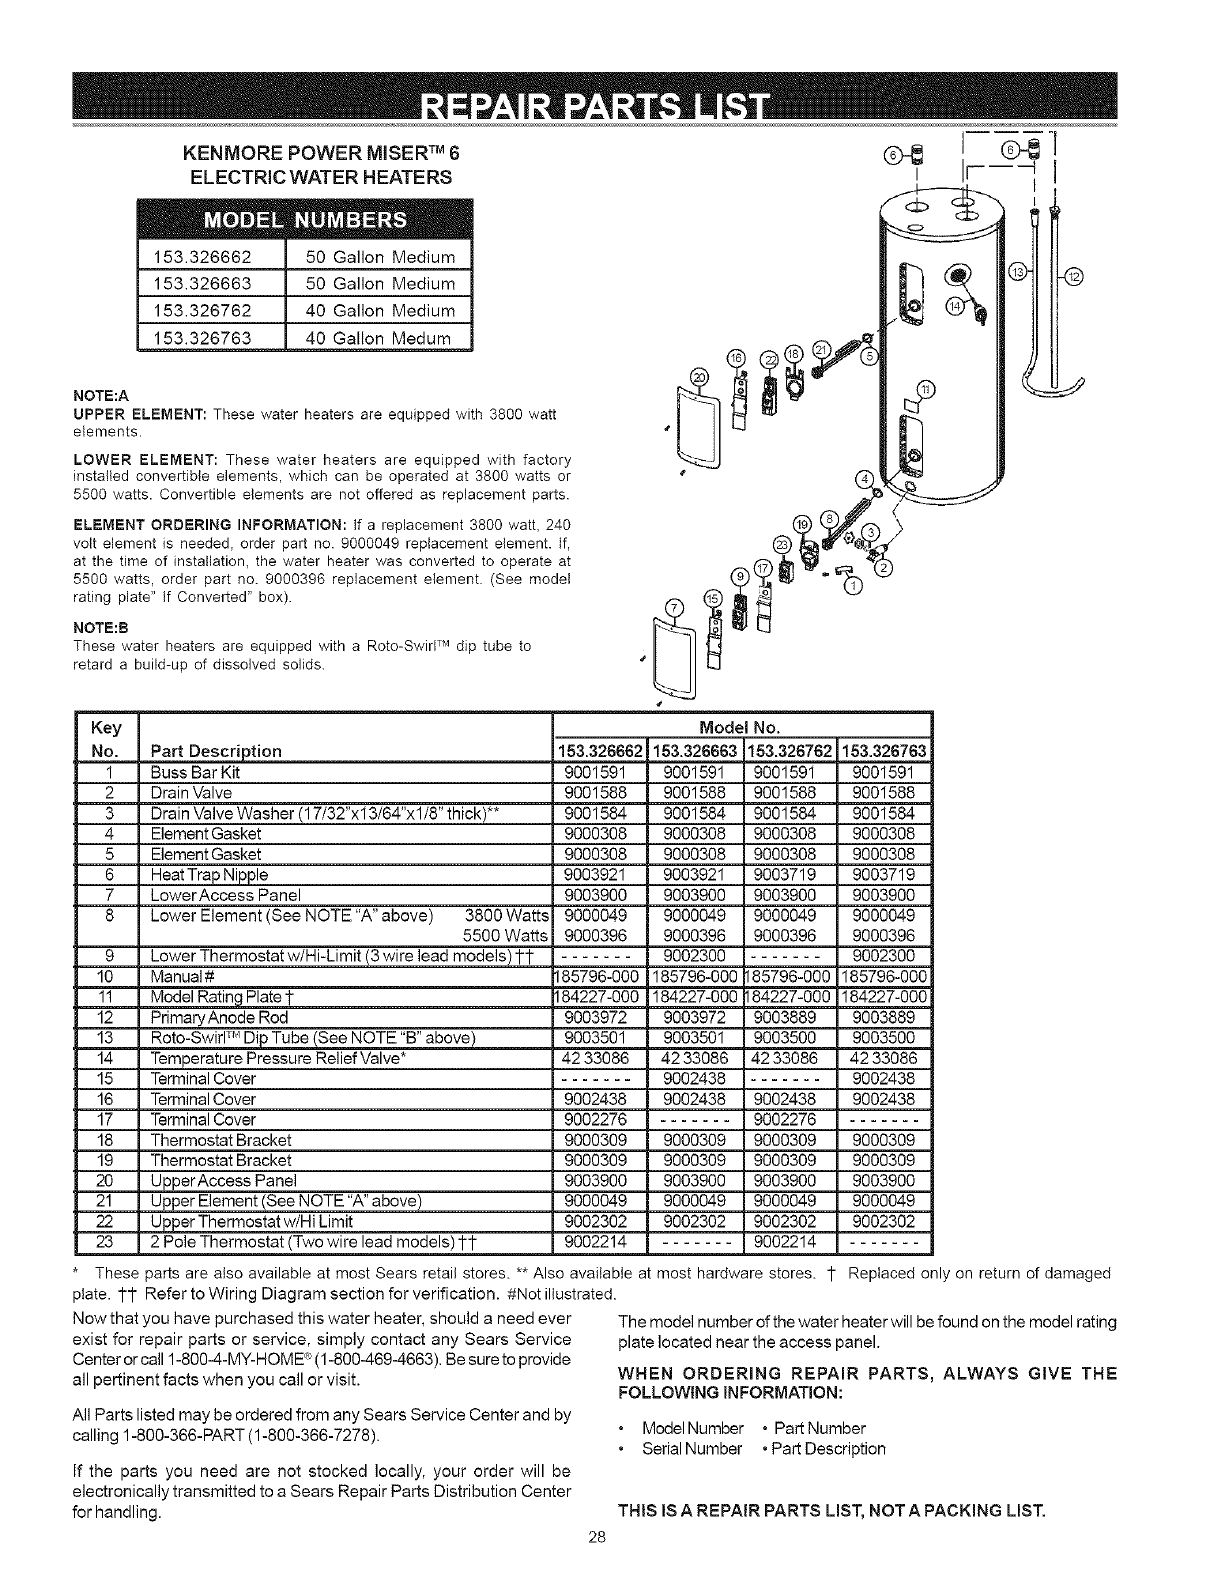 Page 28 of Kenmore Water Heater 153.326562 55 GAL. User